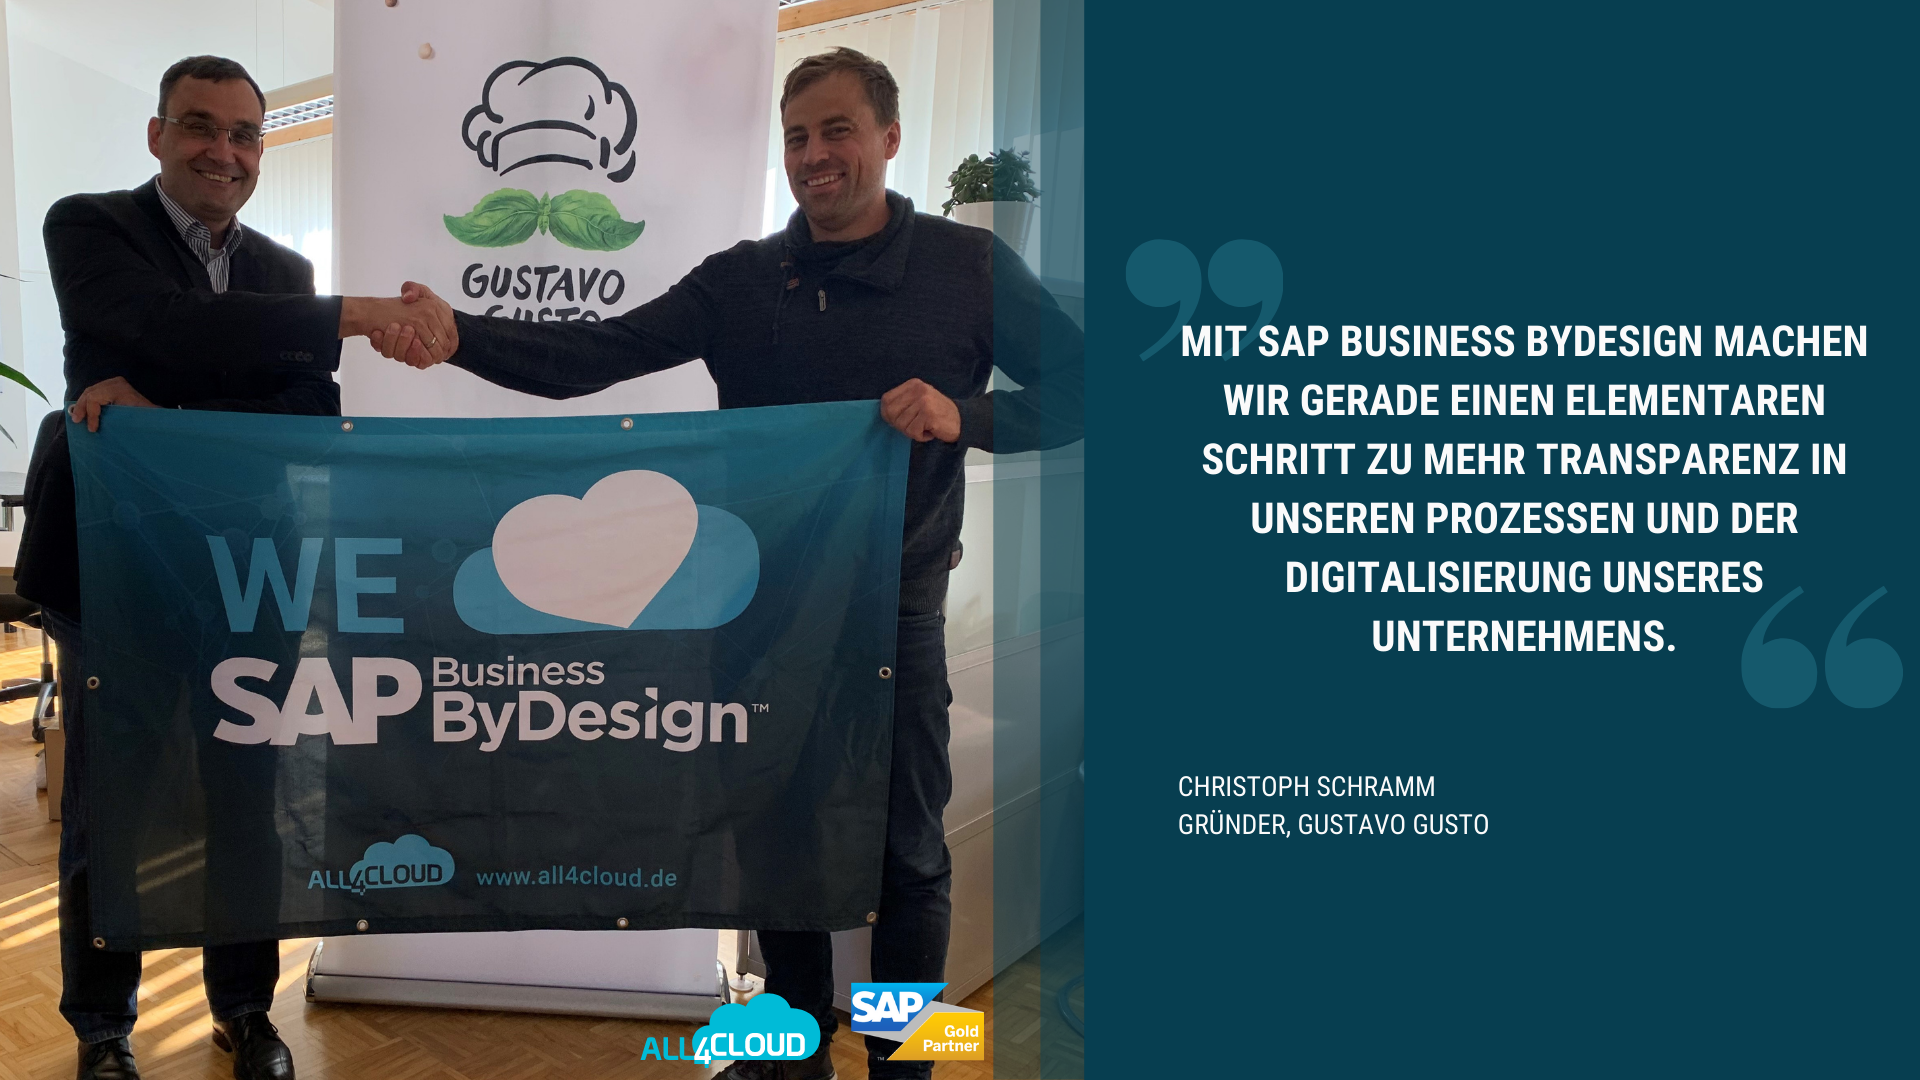 all4cloud sap business bydesign kunde gustavo gusto